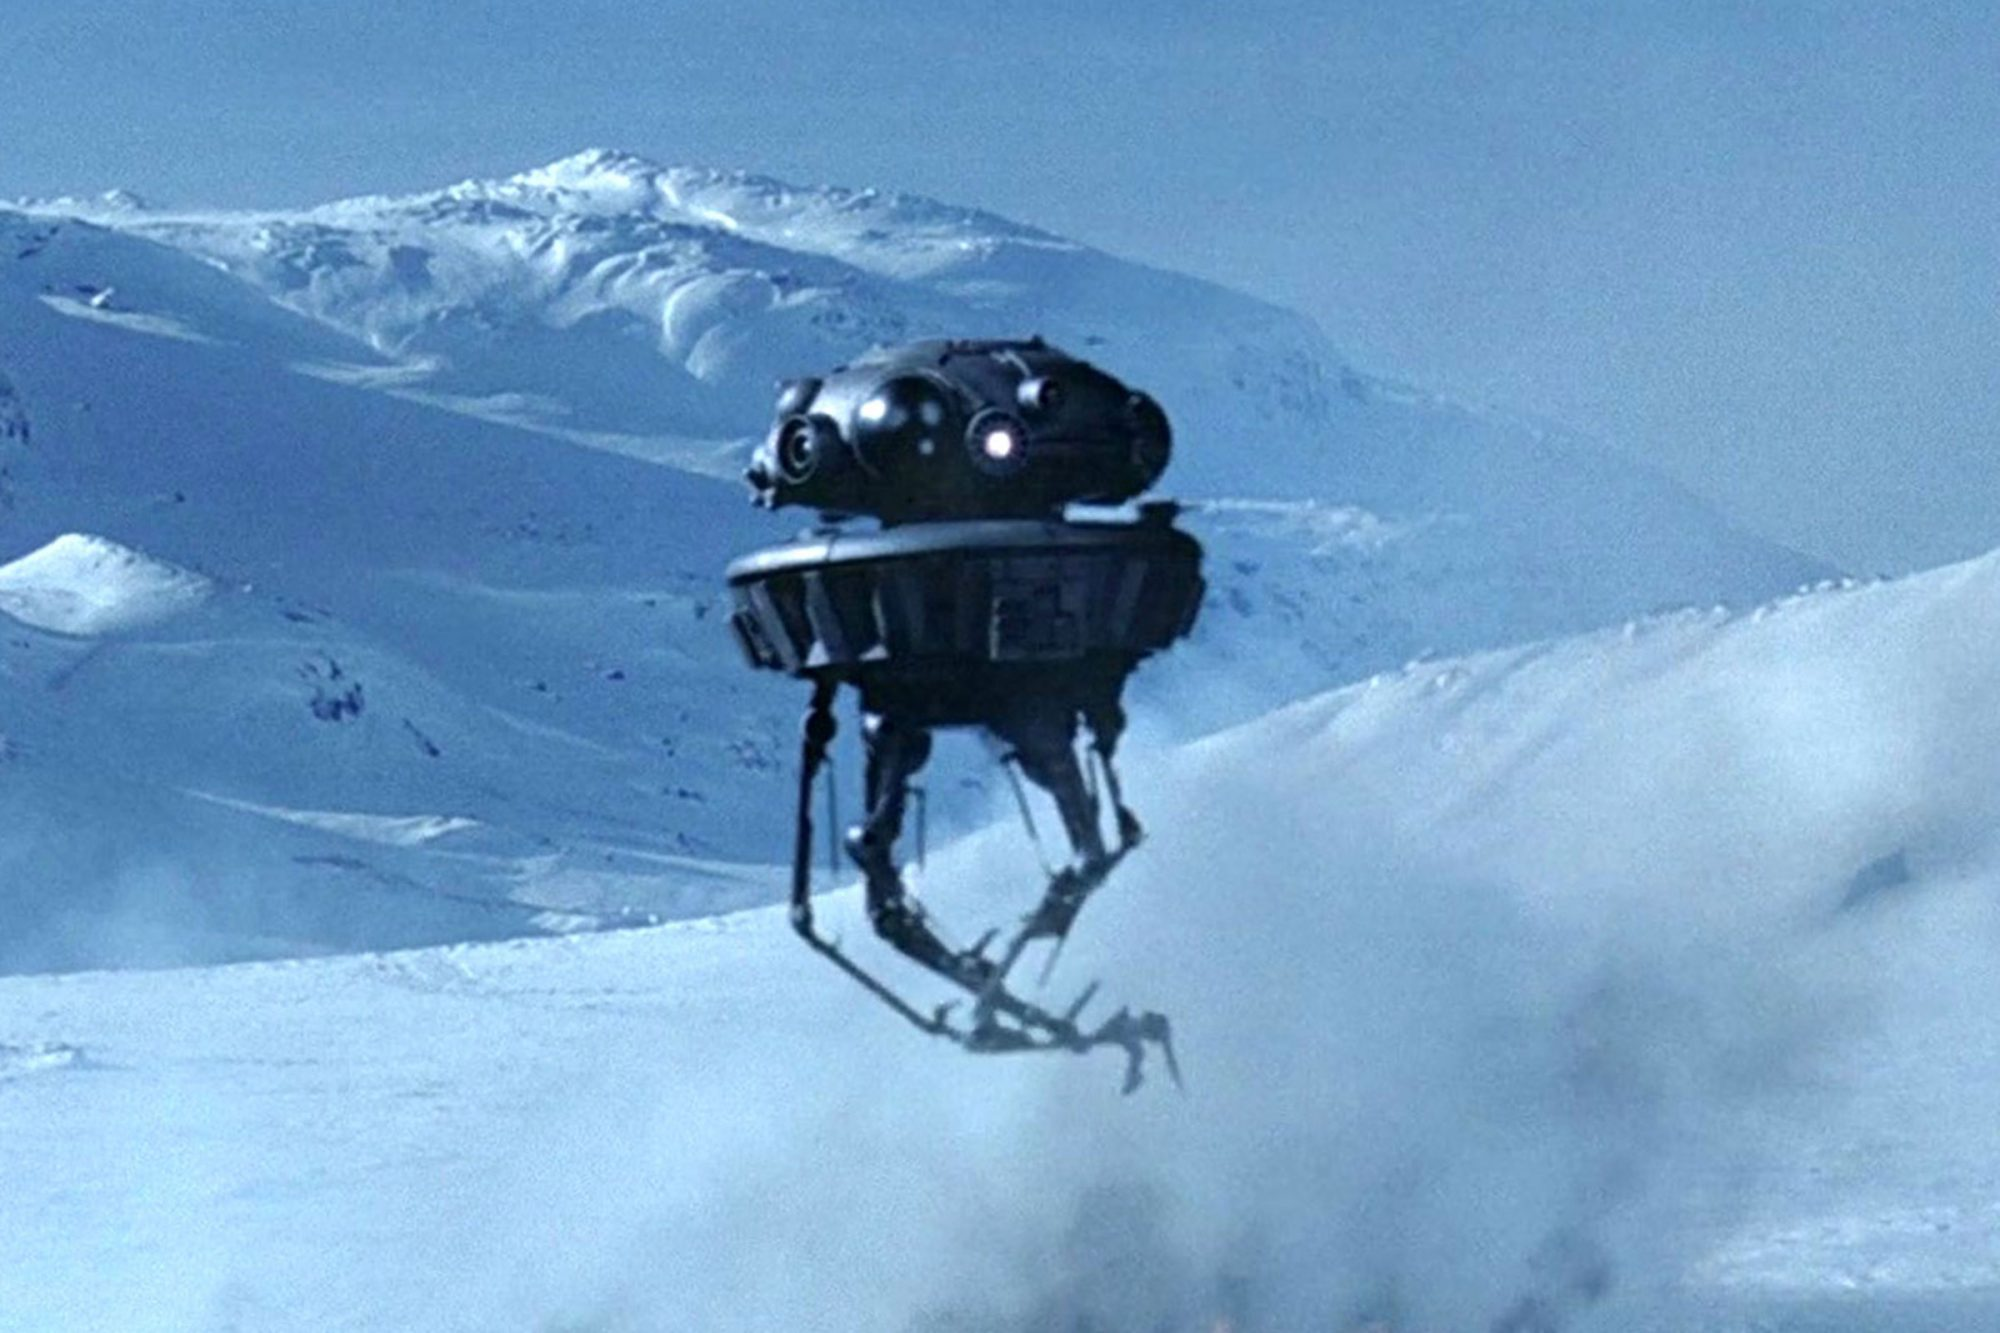 10. Imperial probe droid (The Empire Strikes Back)